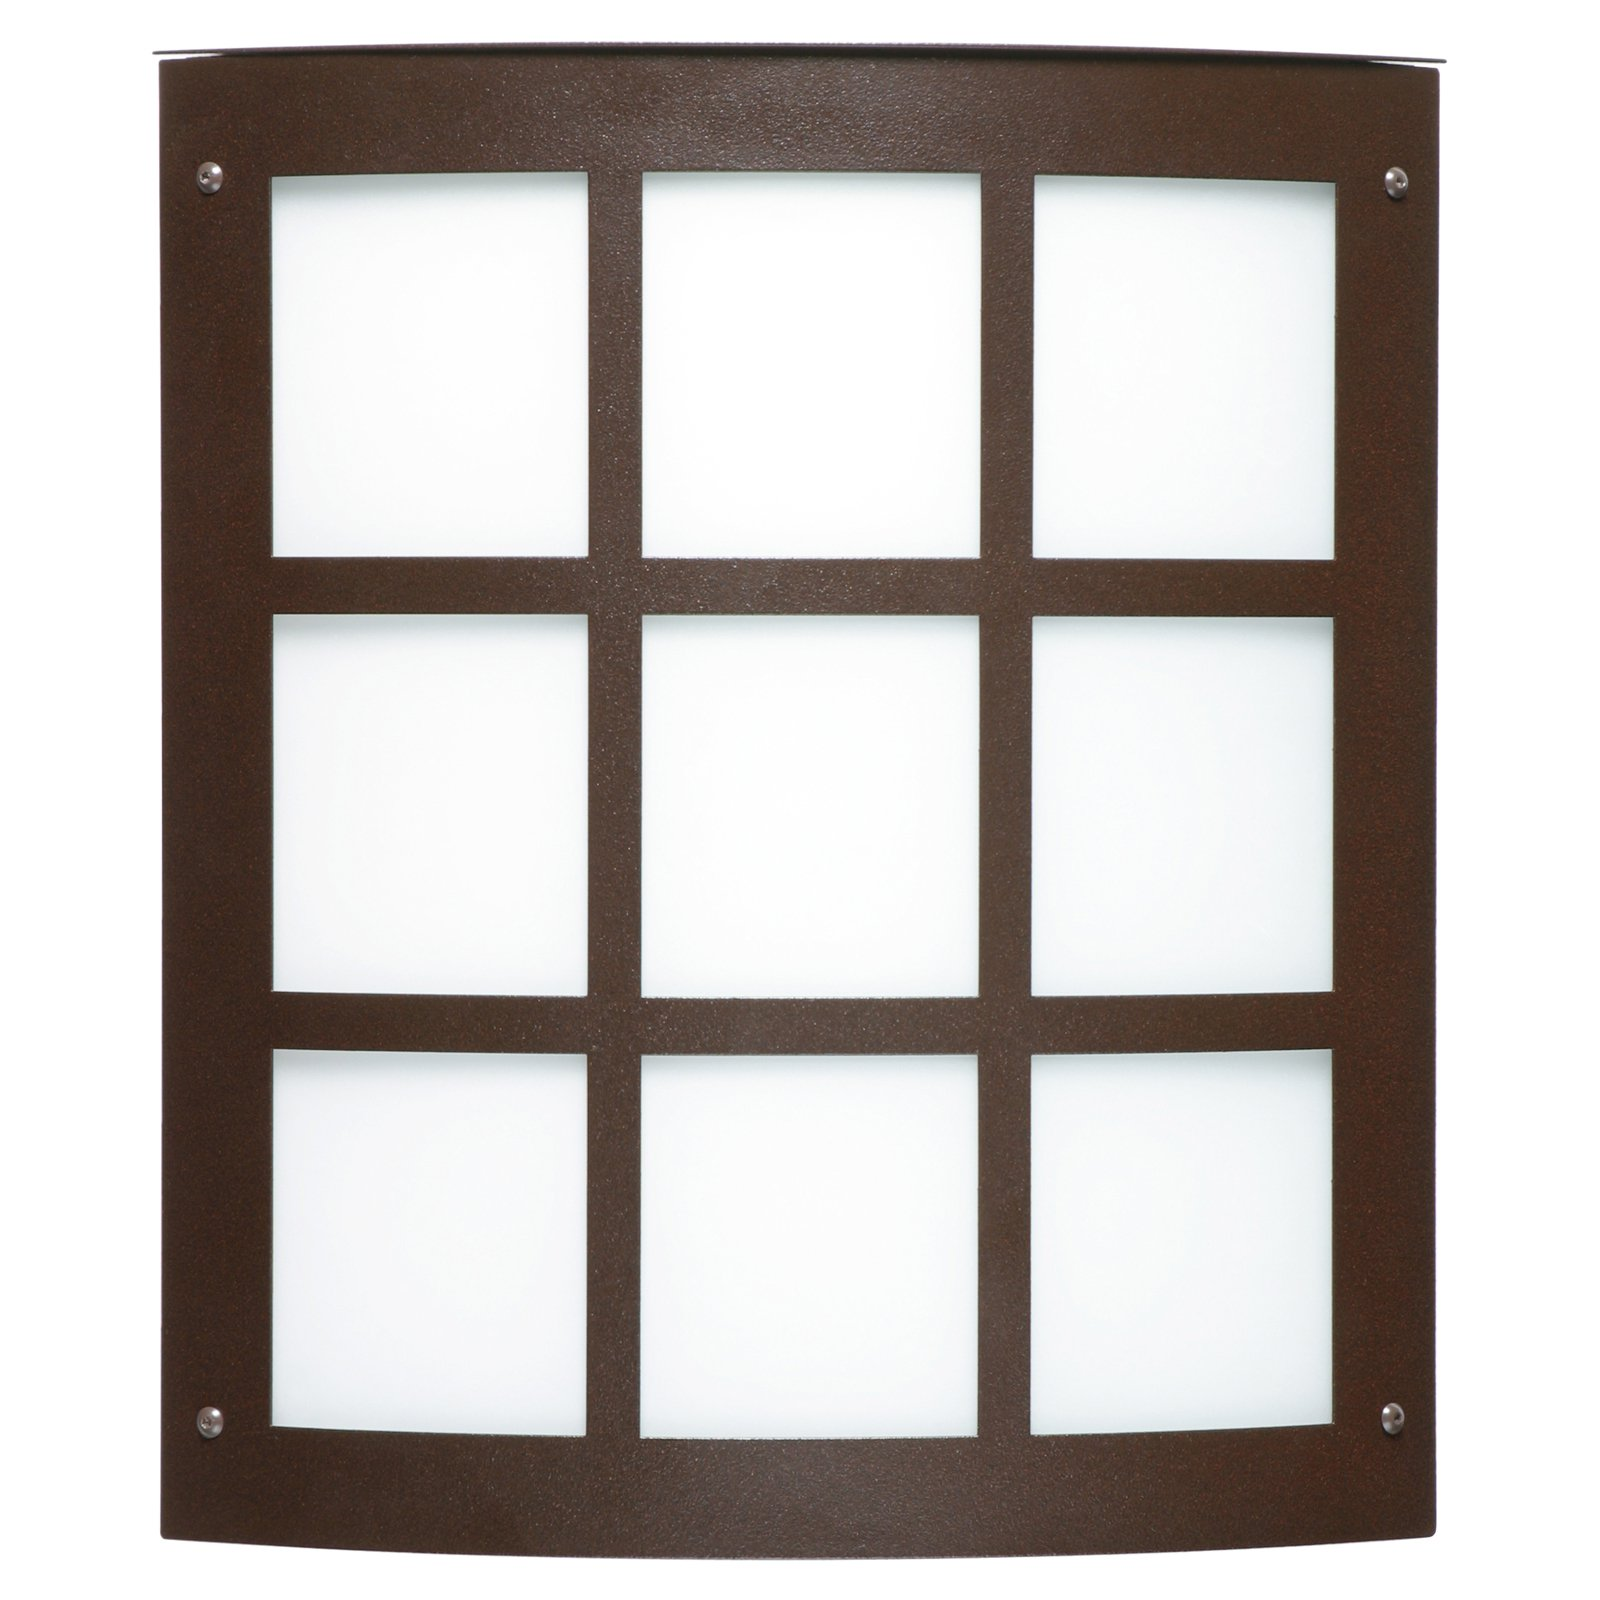 Besa Lighting Moto 11 Grid Outdoor Wall Sconce